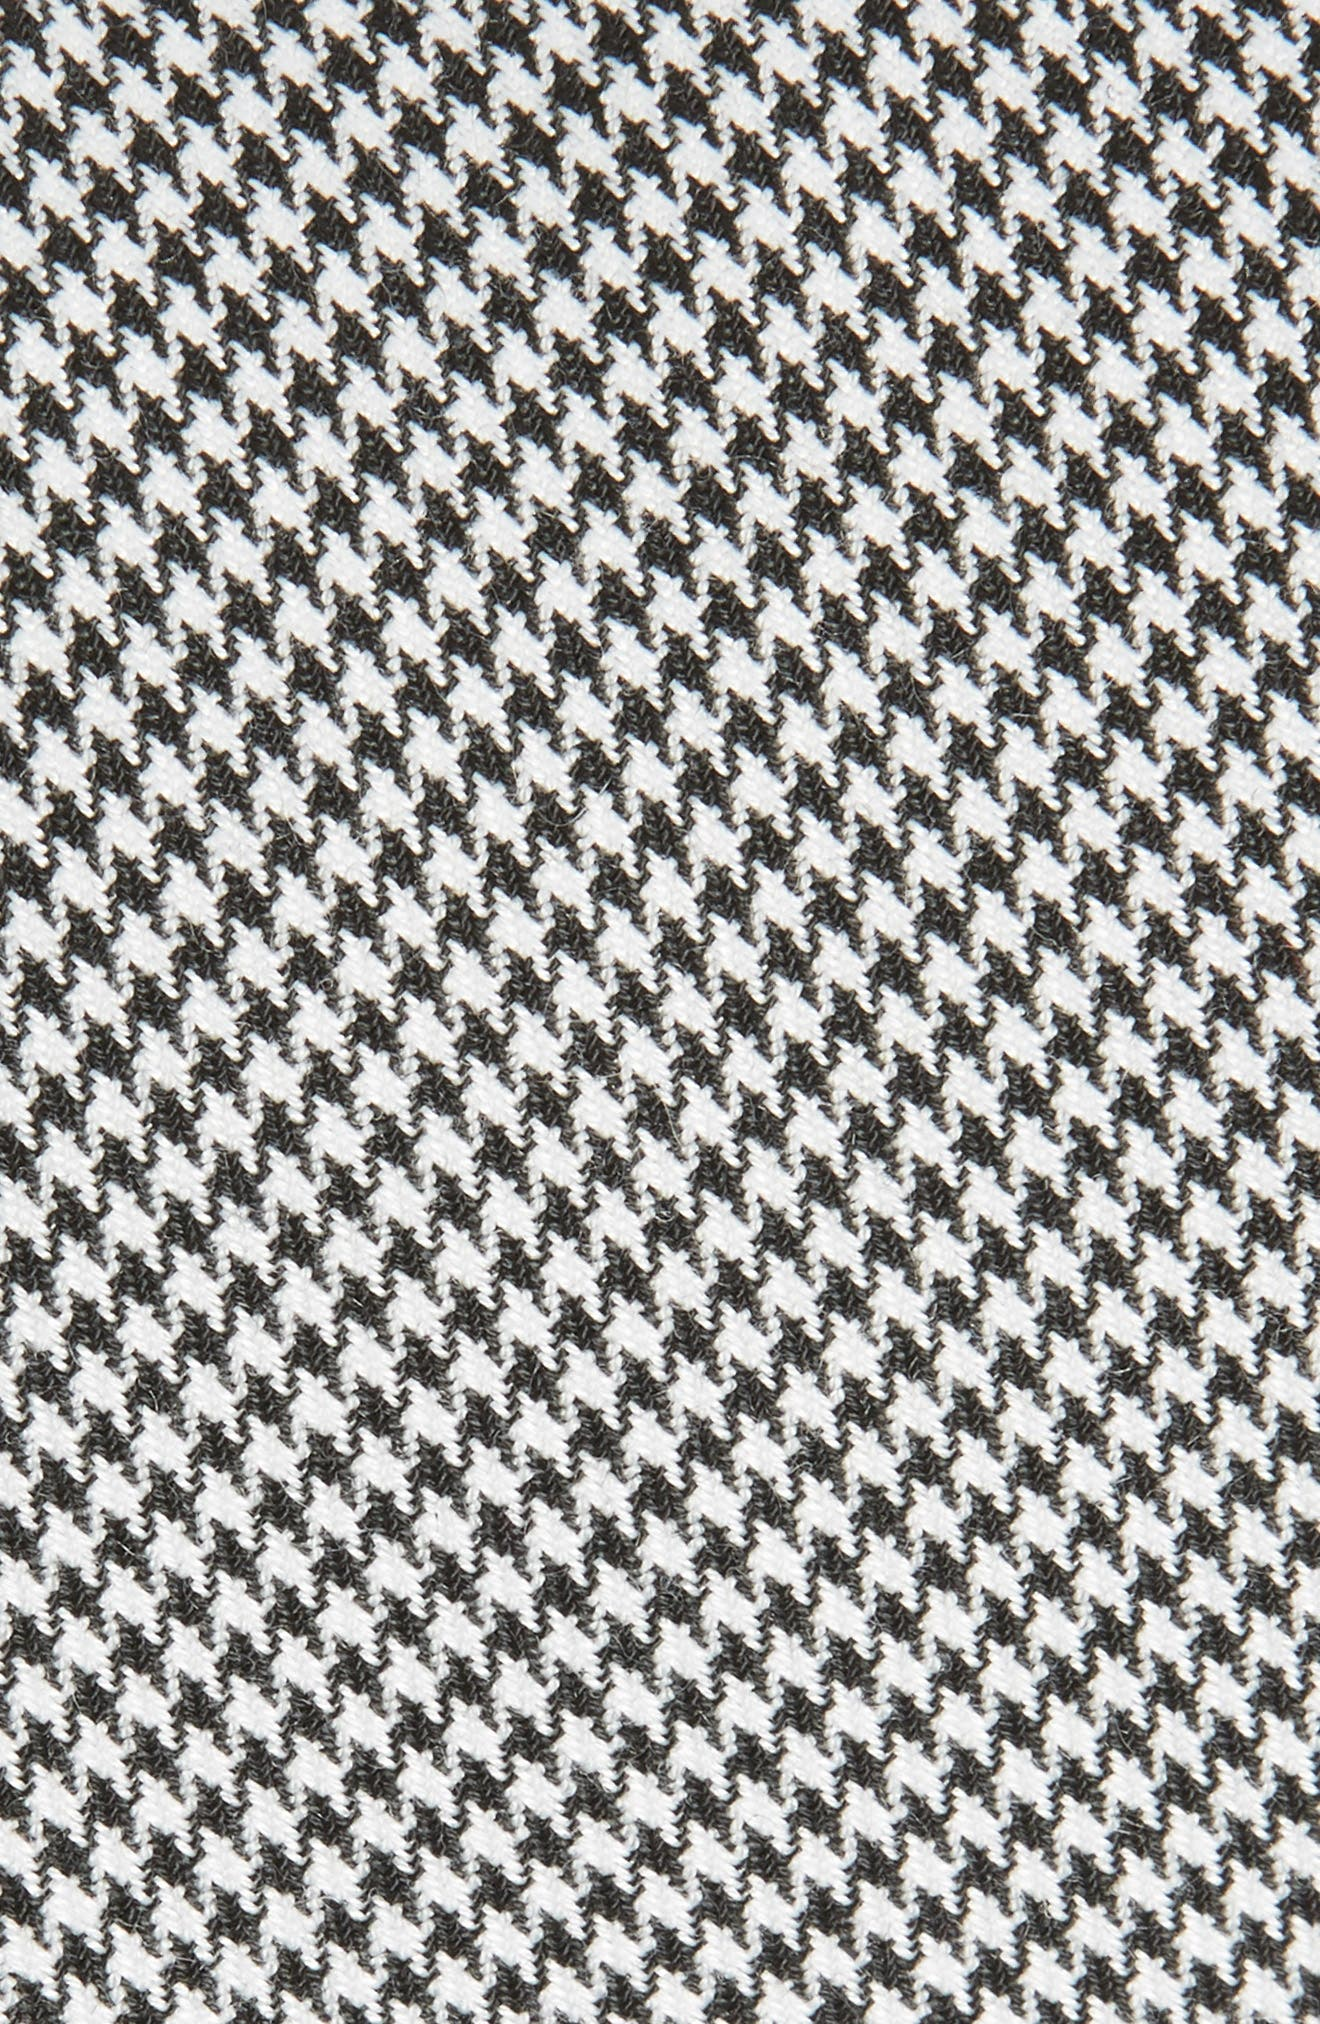 Houndstooth Woven Tie,                             Alternate thumbnail 2, color,                             Black